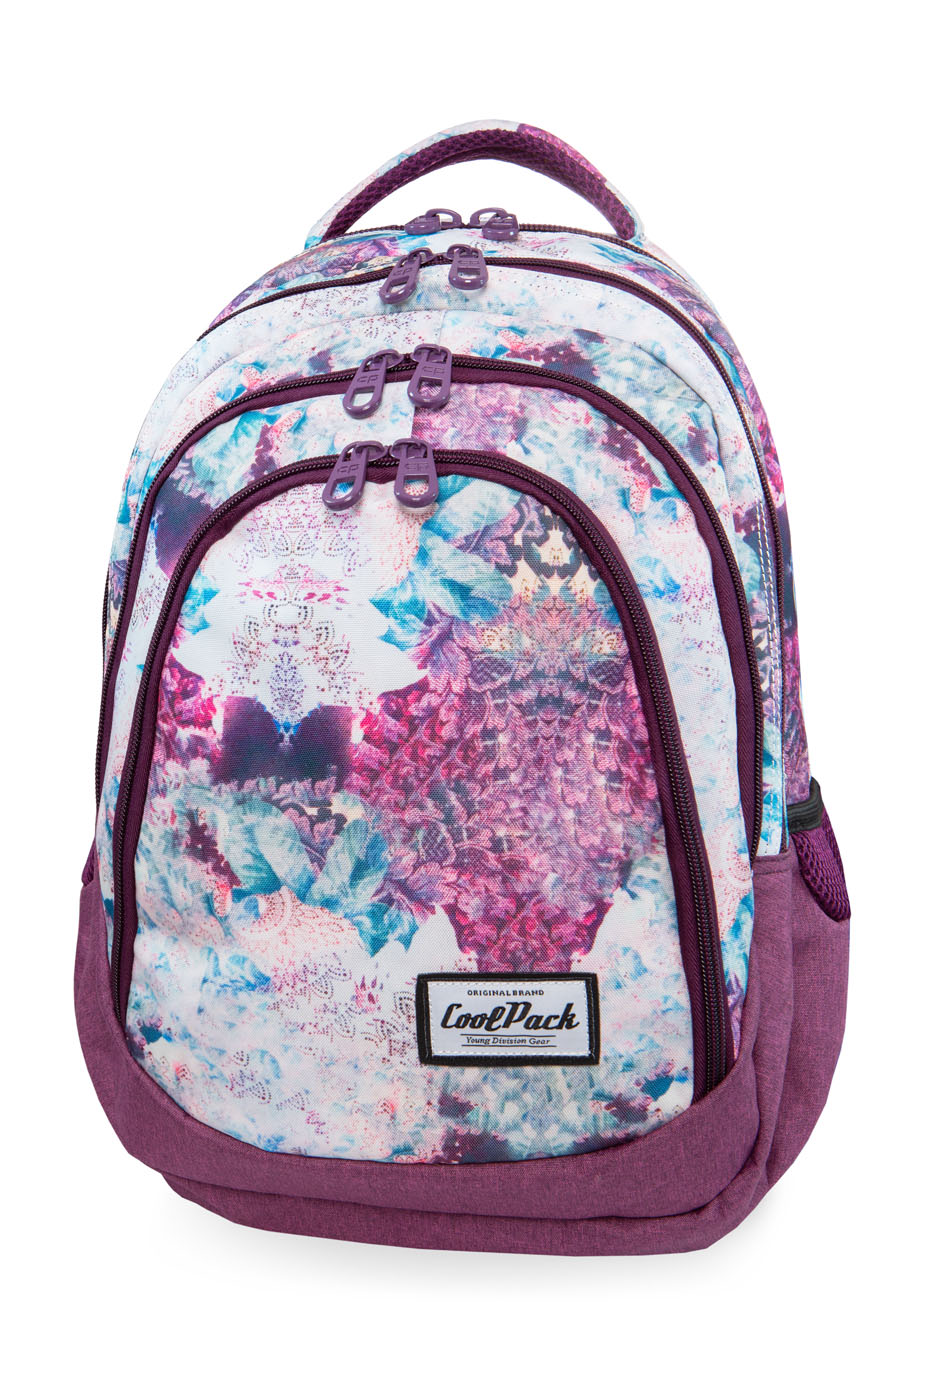 Coolpack - drafter - youth backpack - dream clouds